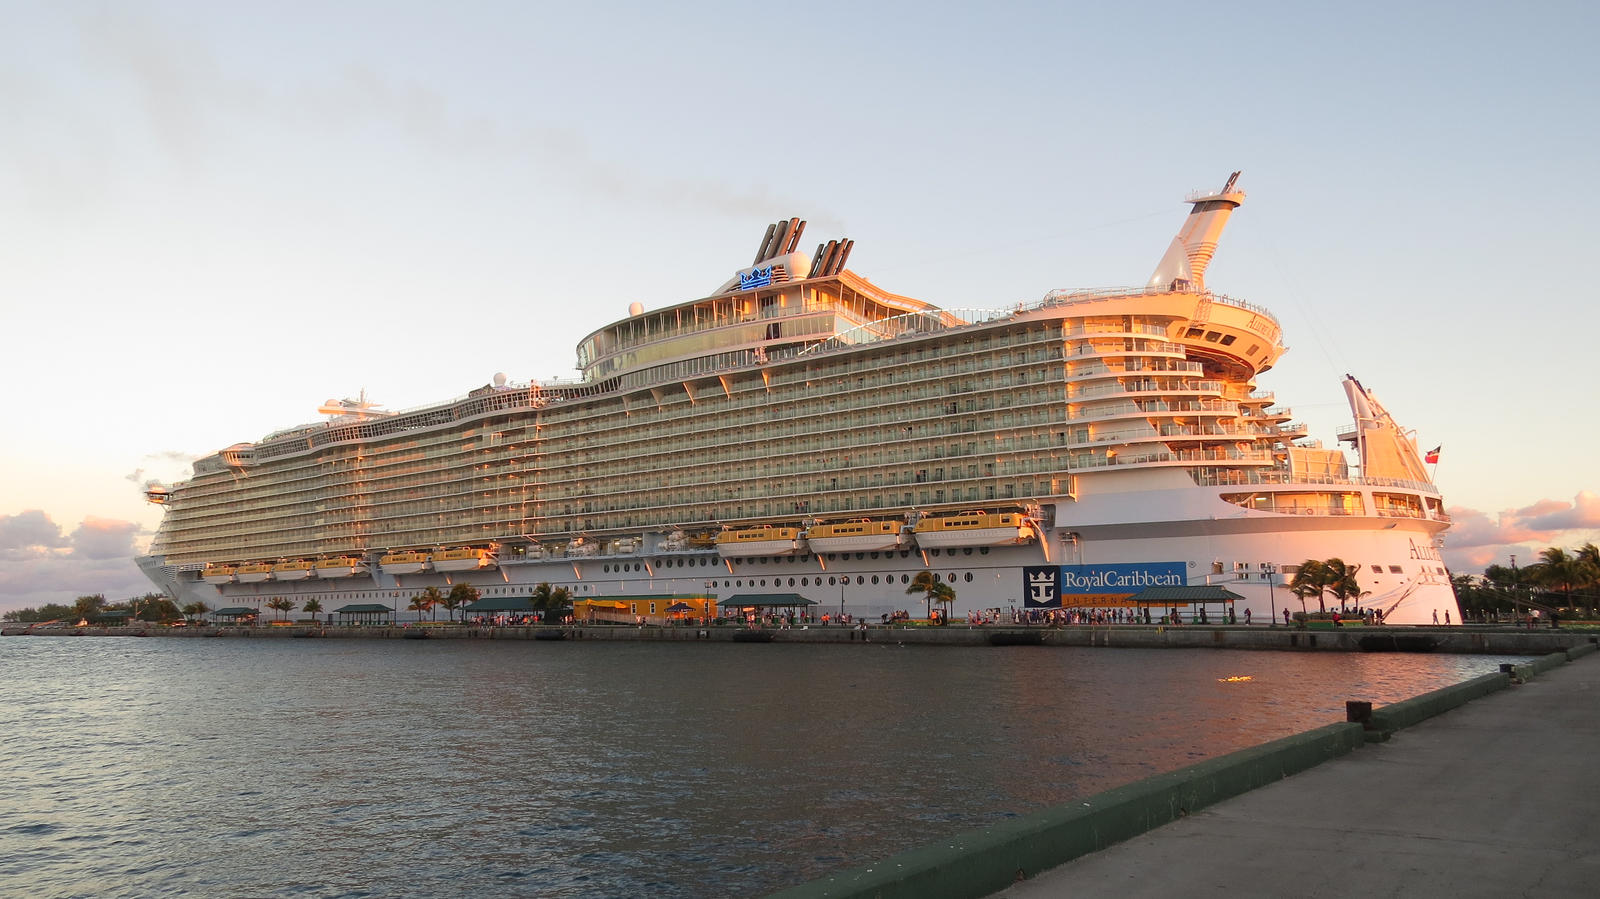 Allure of the seas at nassau by malidicus on deviantart - The allure of the modular home ...